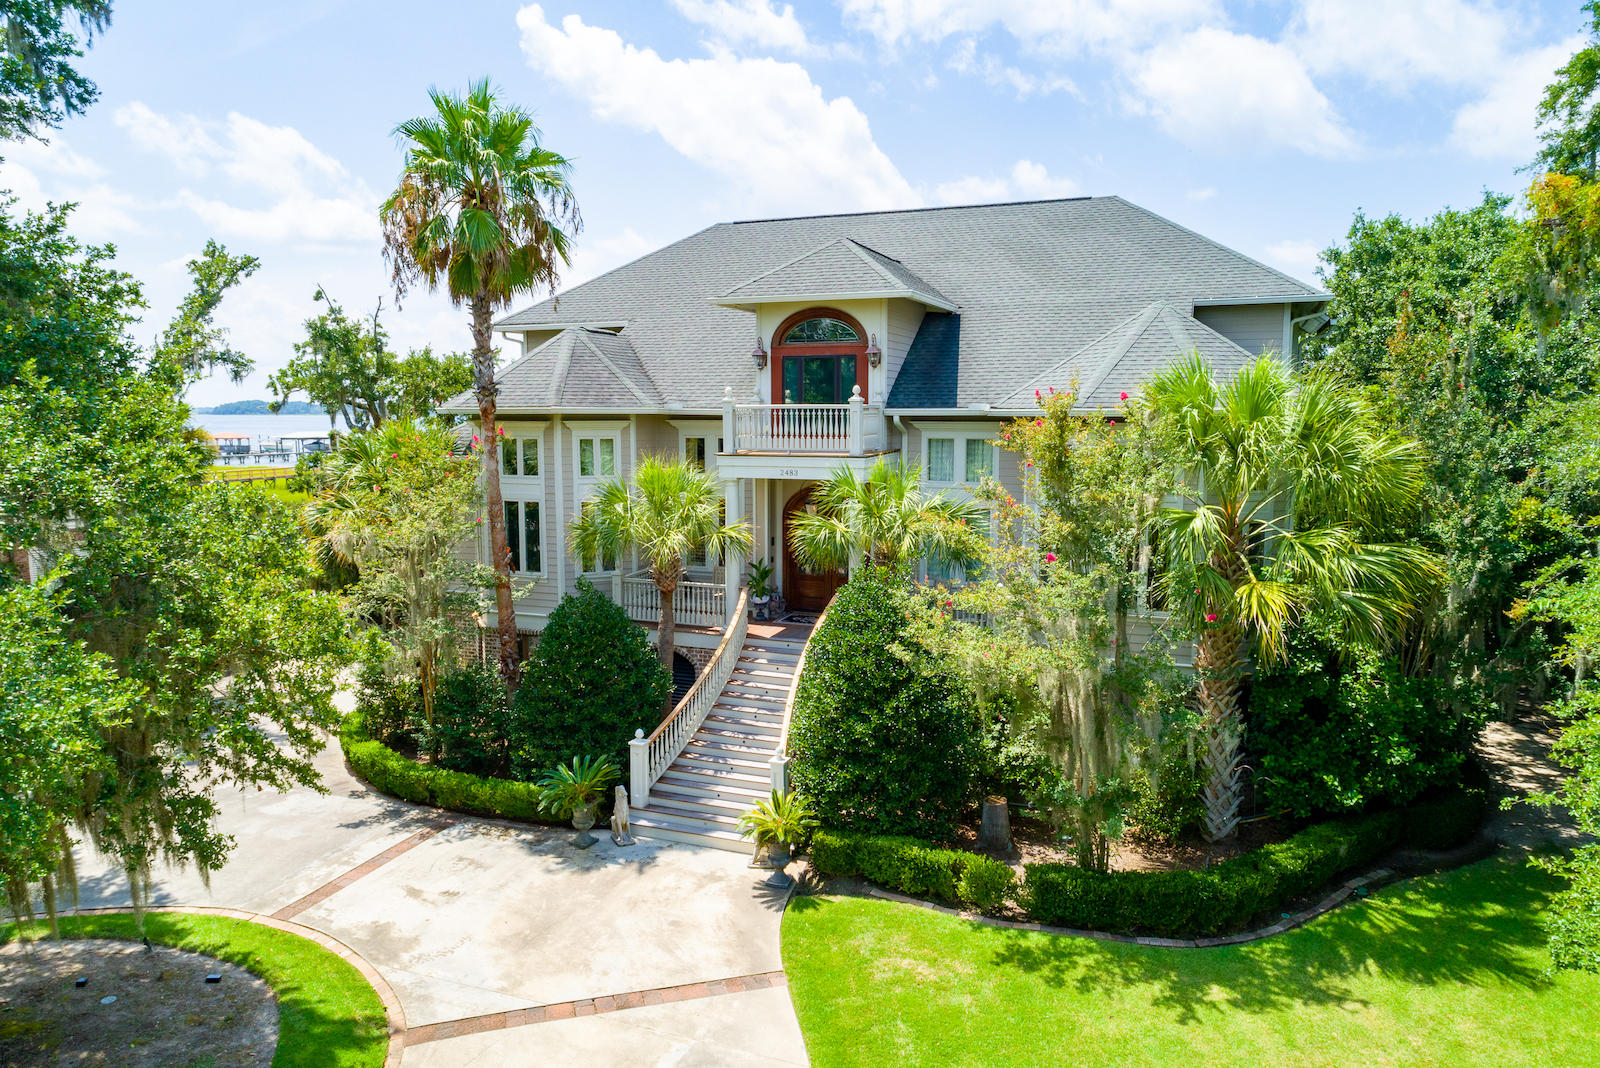 Rivertowne On The Wando Homes For Sale - 2483 River Bluff, Mount Pleasant, SC - 22